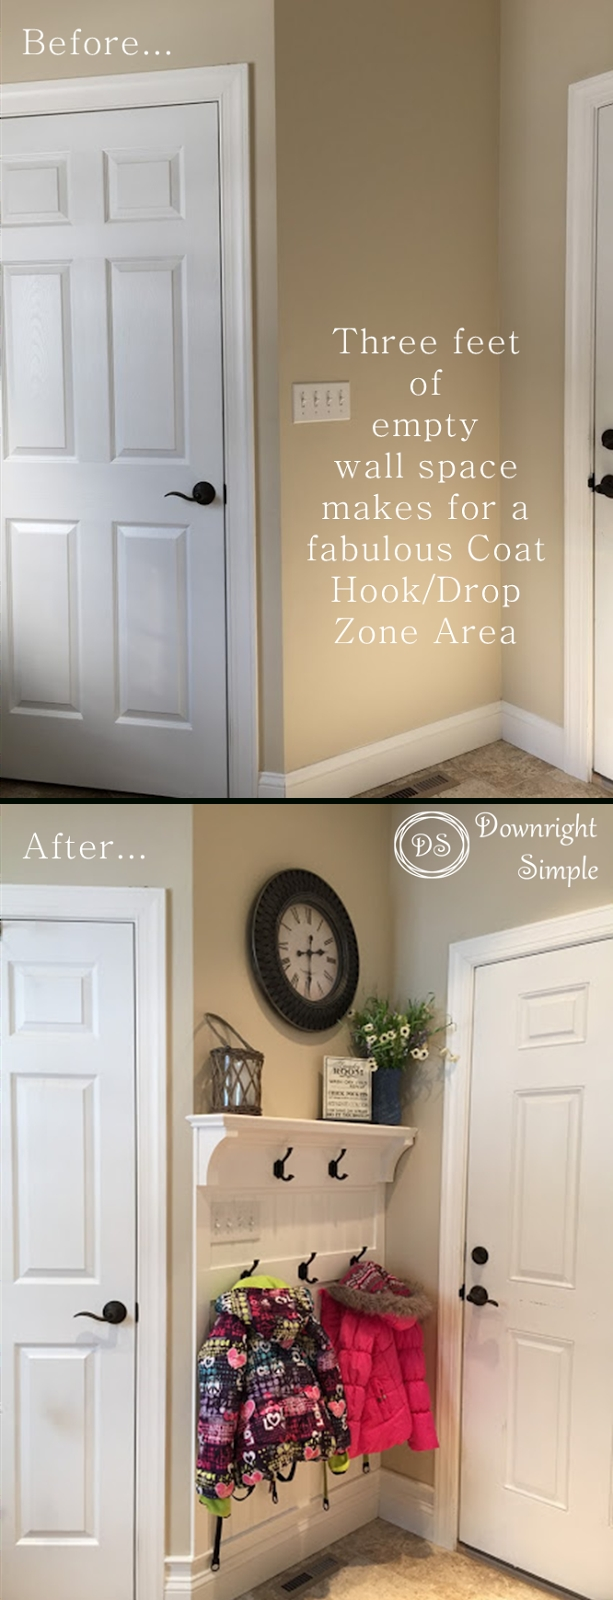 10 Most Popular Entryway Ideas For Small Spaces downright simple mudroom entryway maximizing a small space my 2020